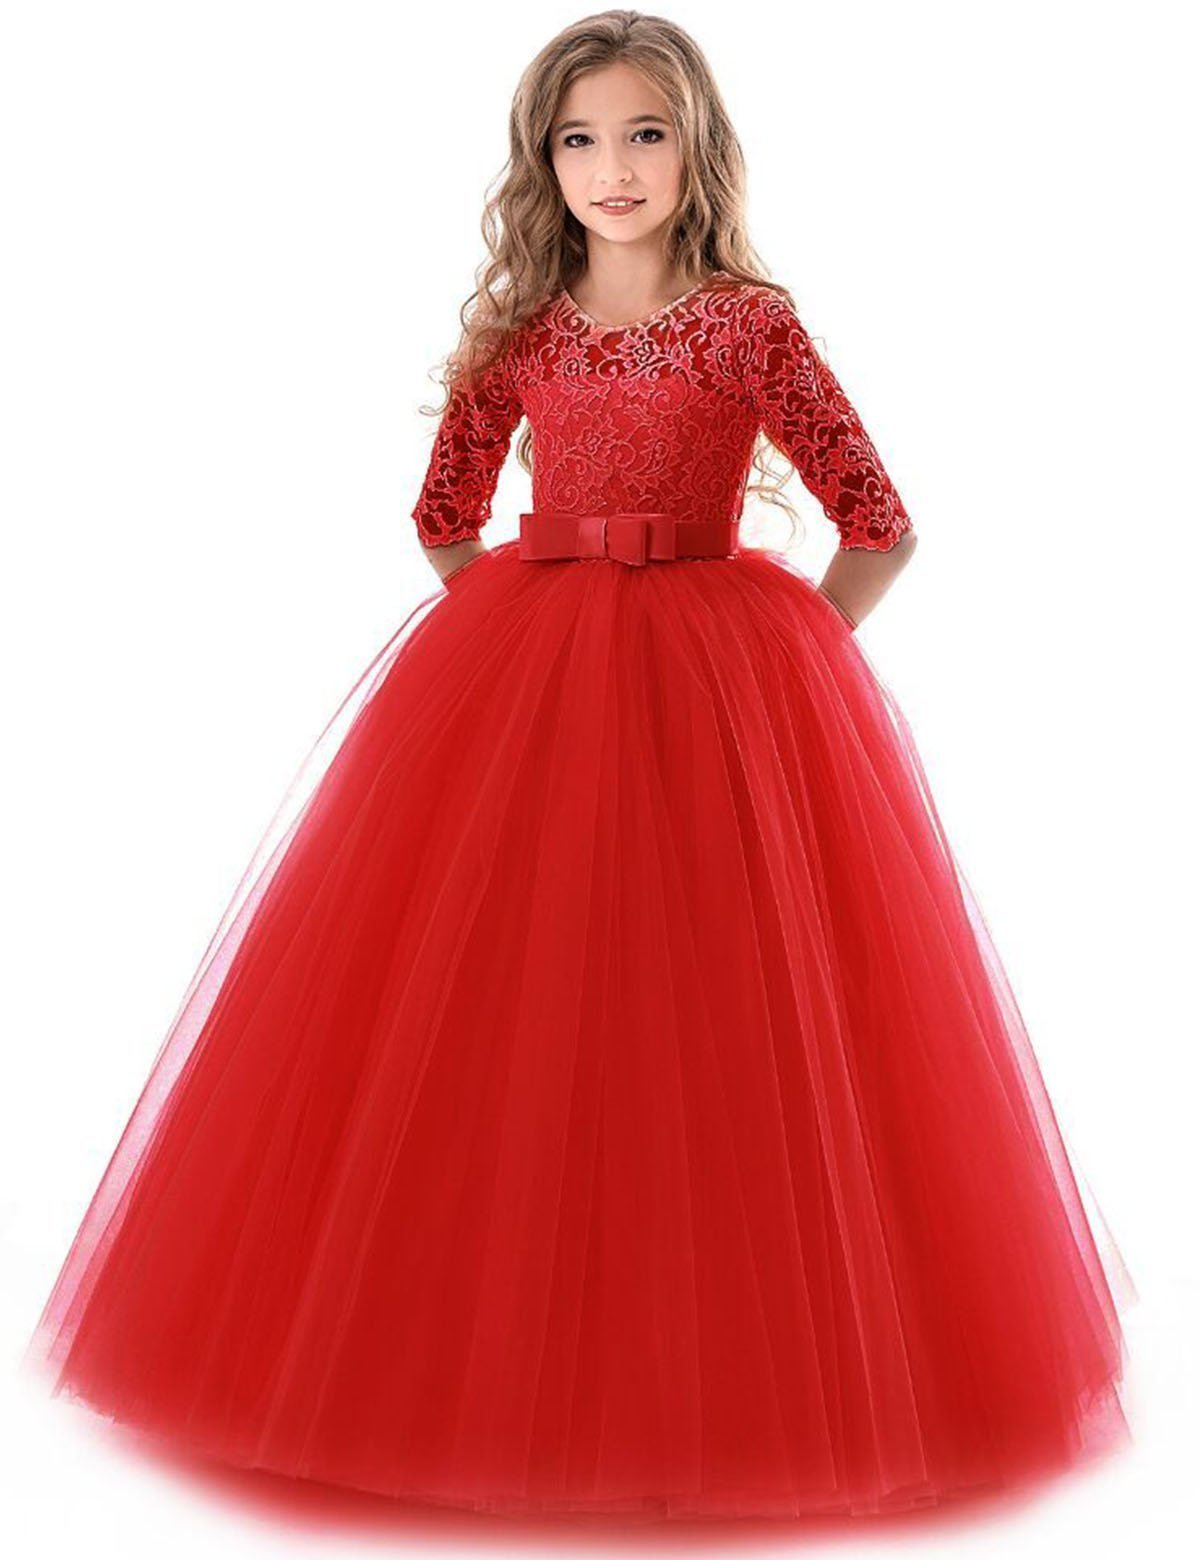 NNJXD Girls Pageant Embroidery Ball Gown Princess Wedding Dress Size (170) 13-14 Years Red